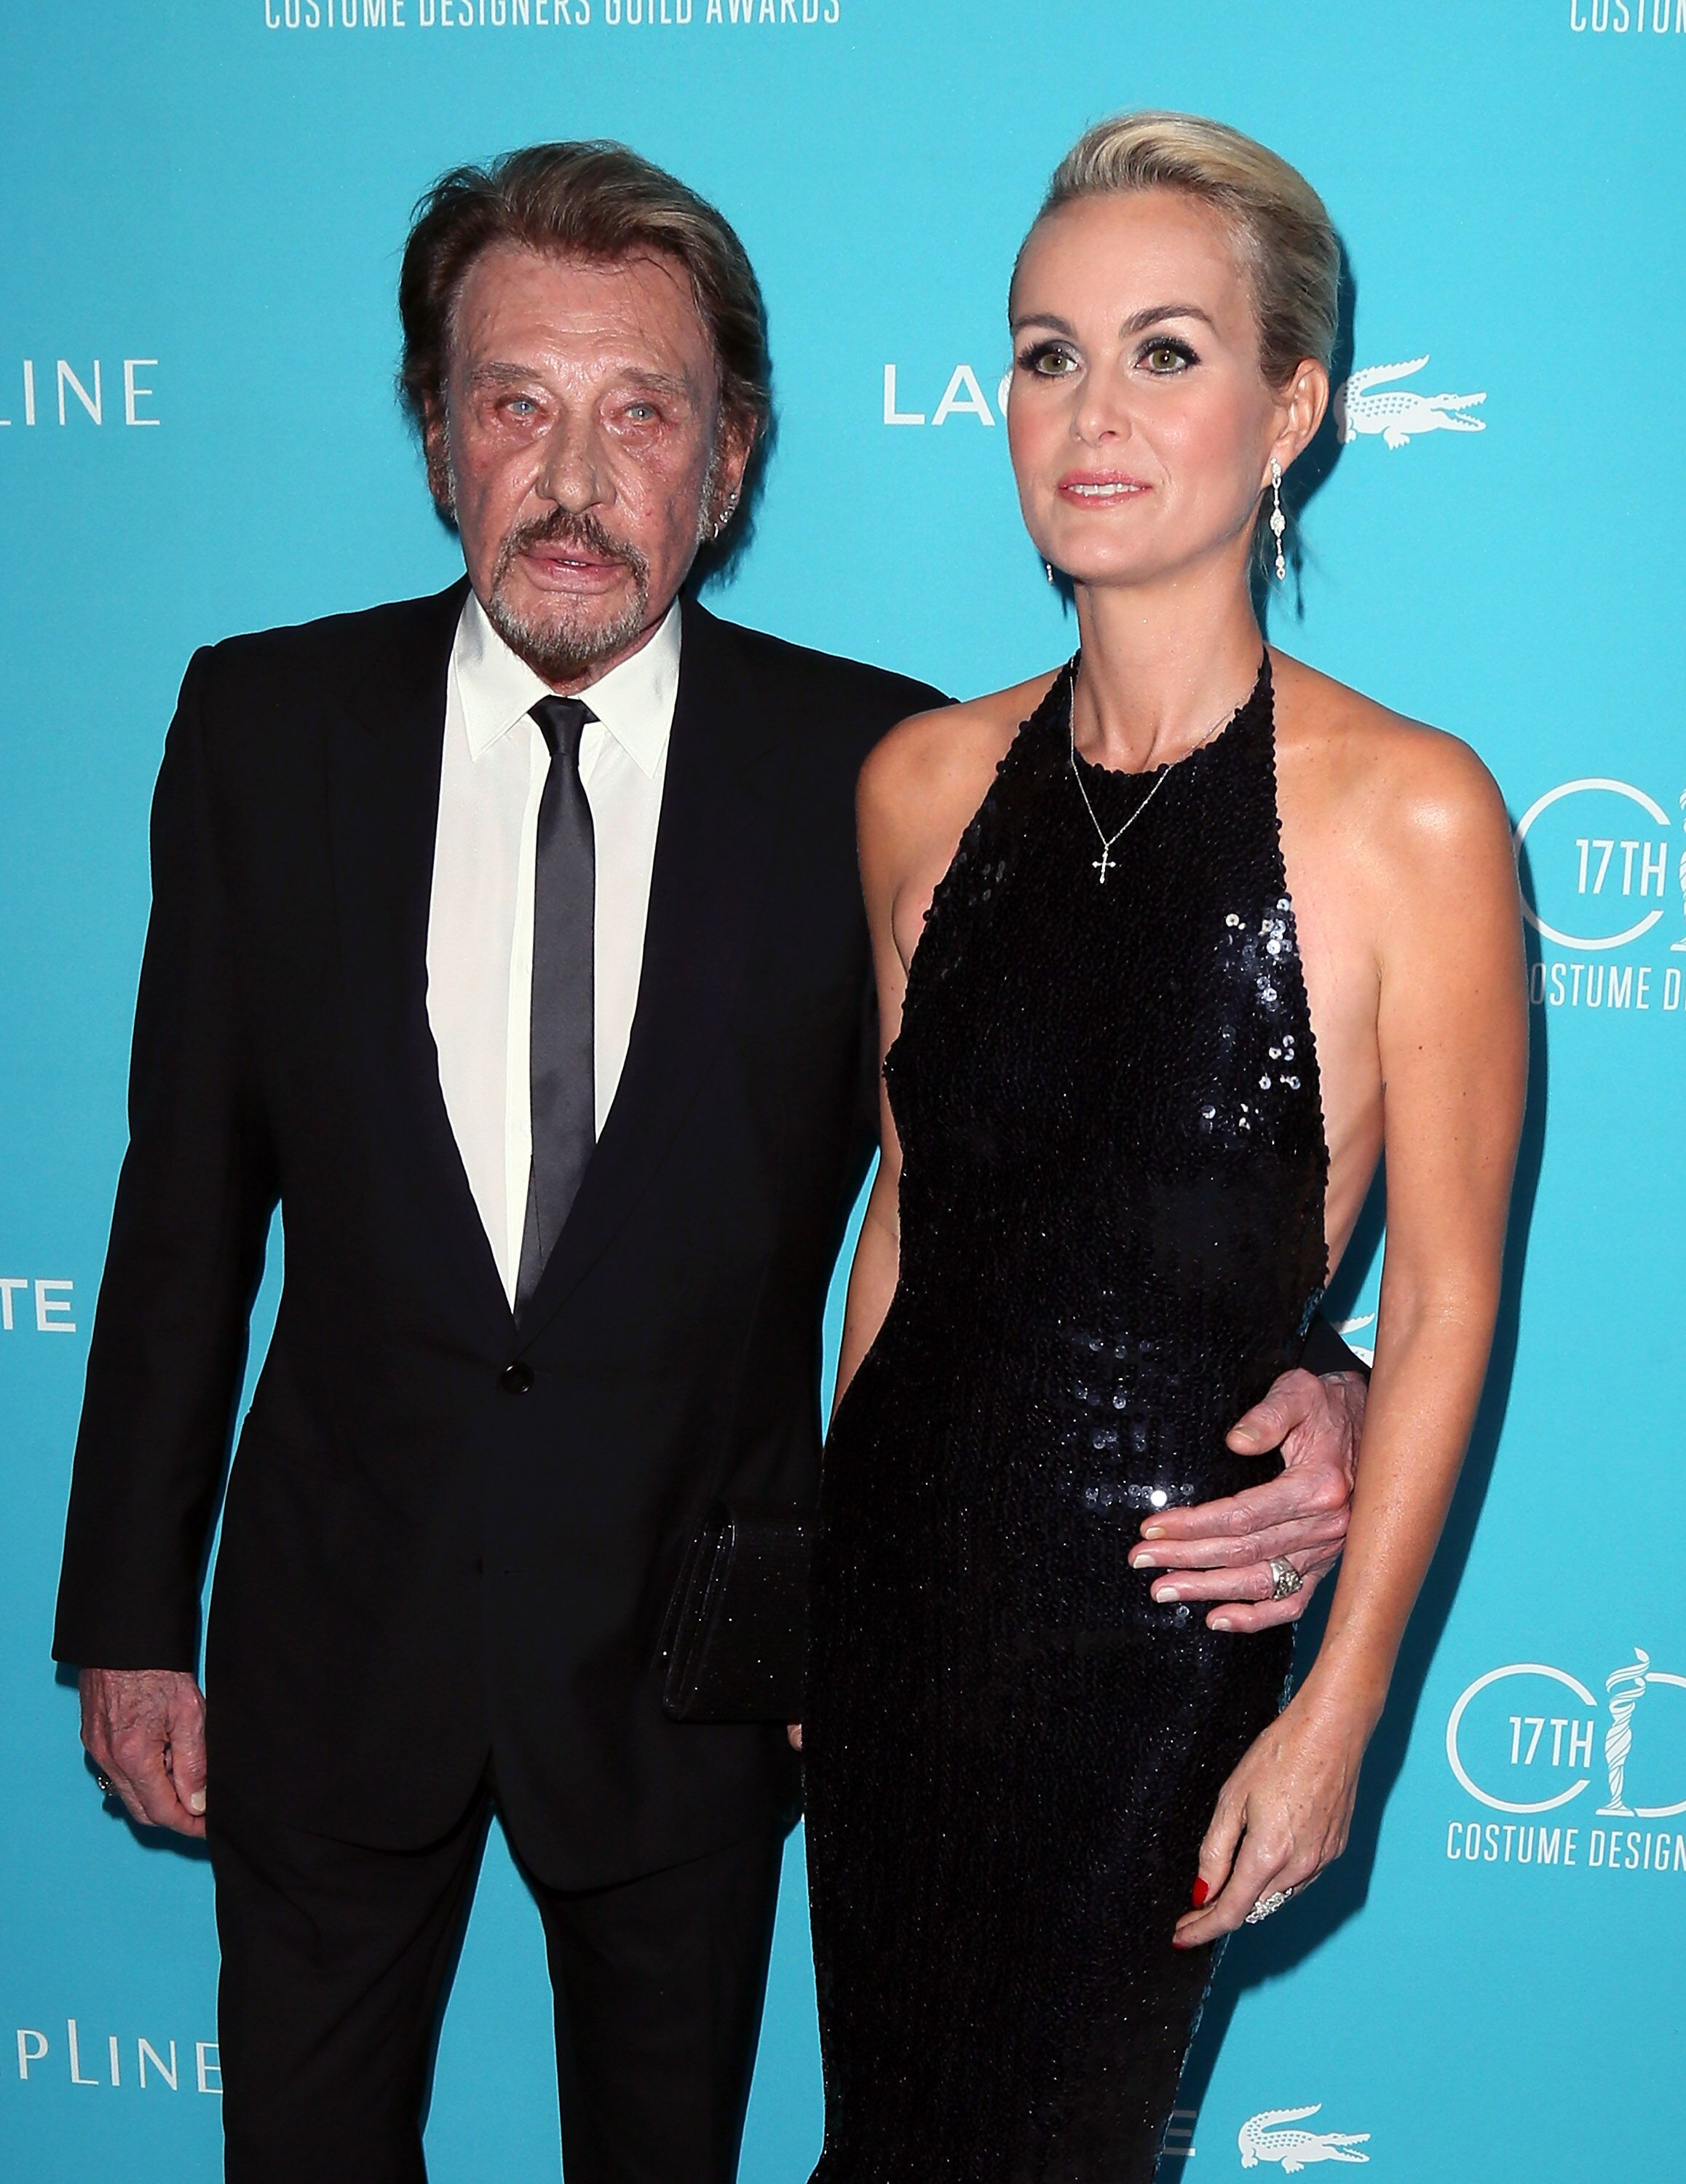 Johnny Hallyday (à gauche) et son épouse Laeticia Hallyday assistent à la 17e remise des Costume Designers Guild Awards à l'hôtel Beverly Hilton à Beverly Hills, Californie. | Photo : Getty Images